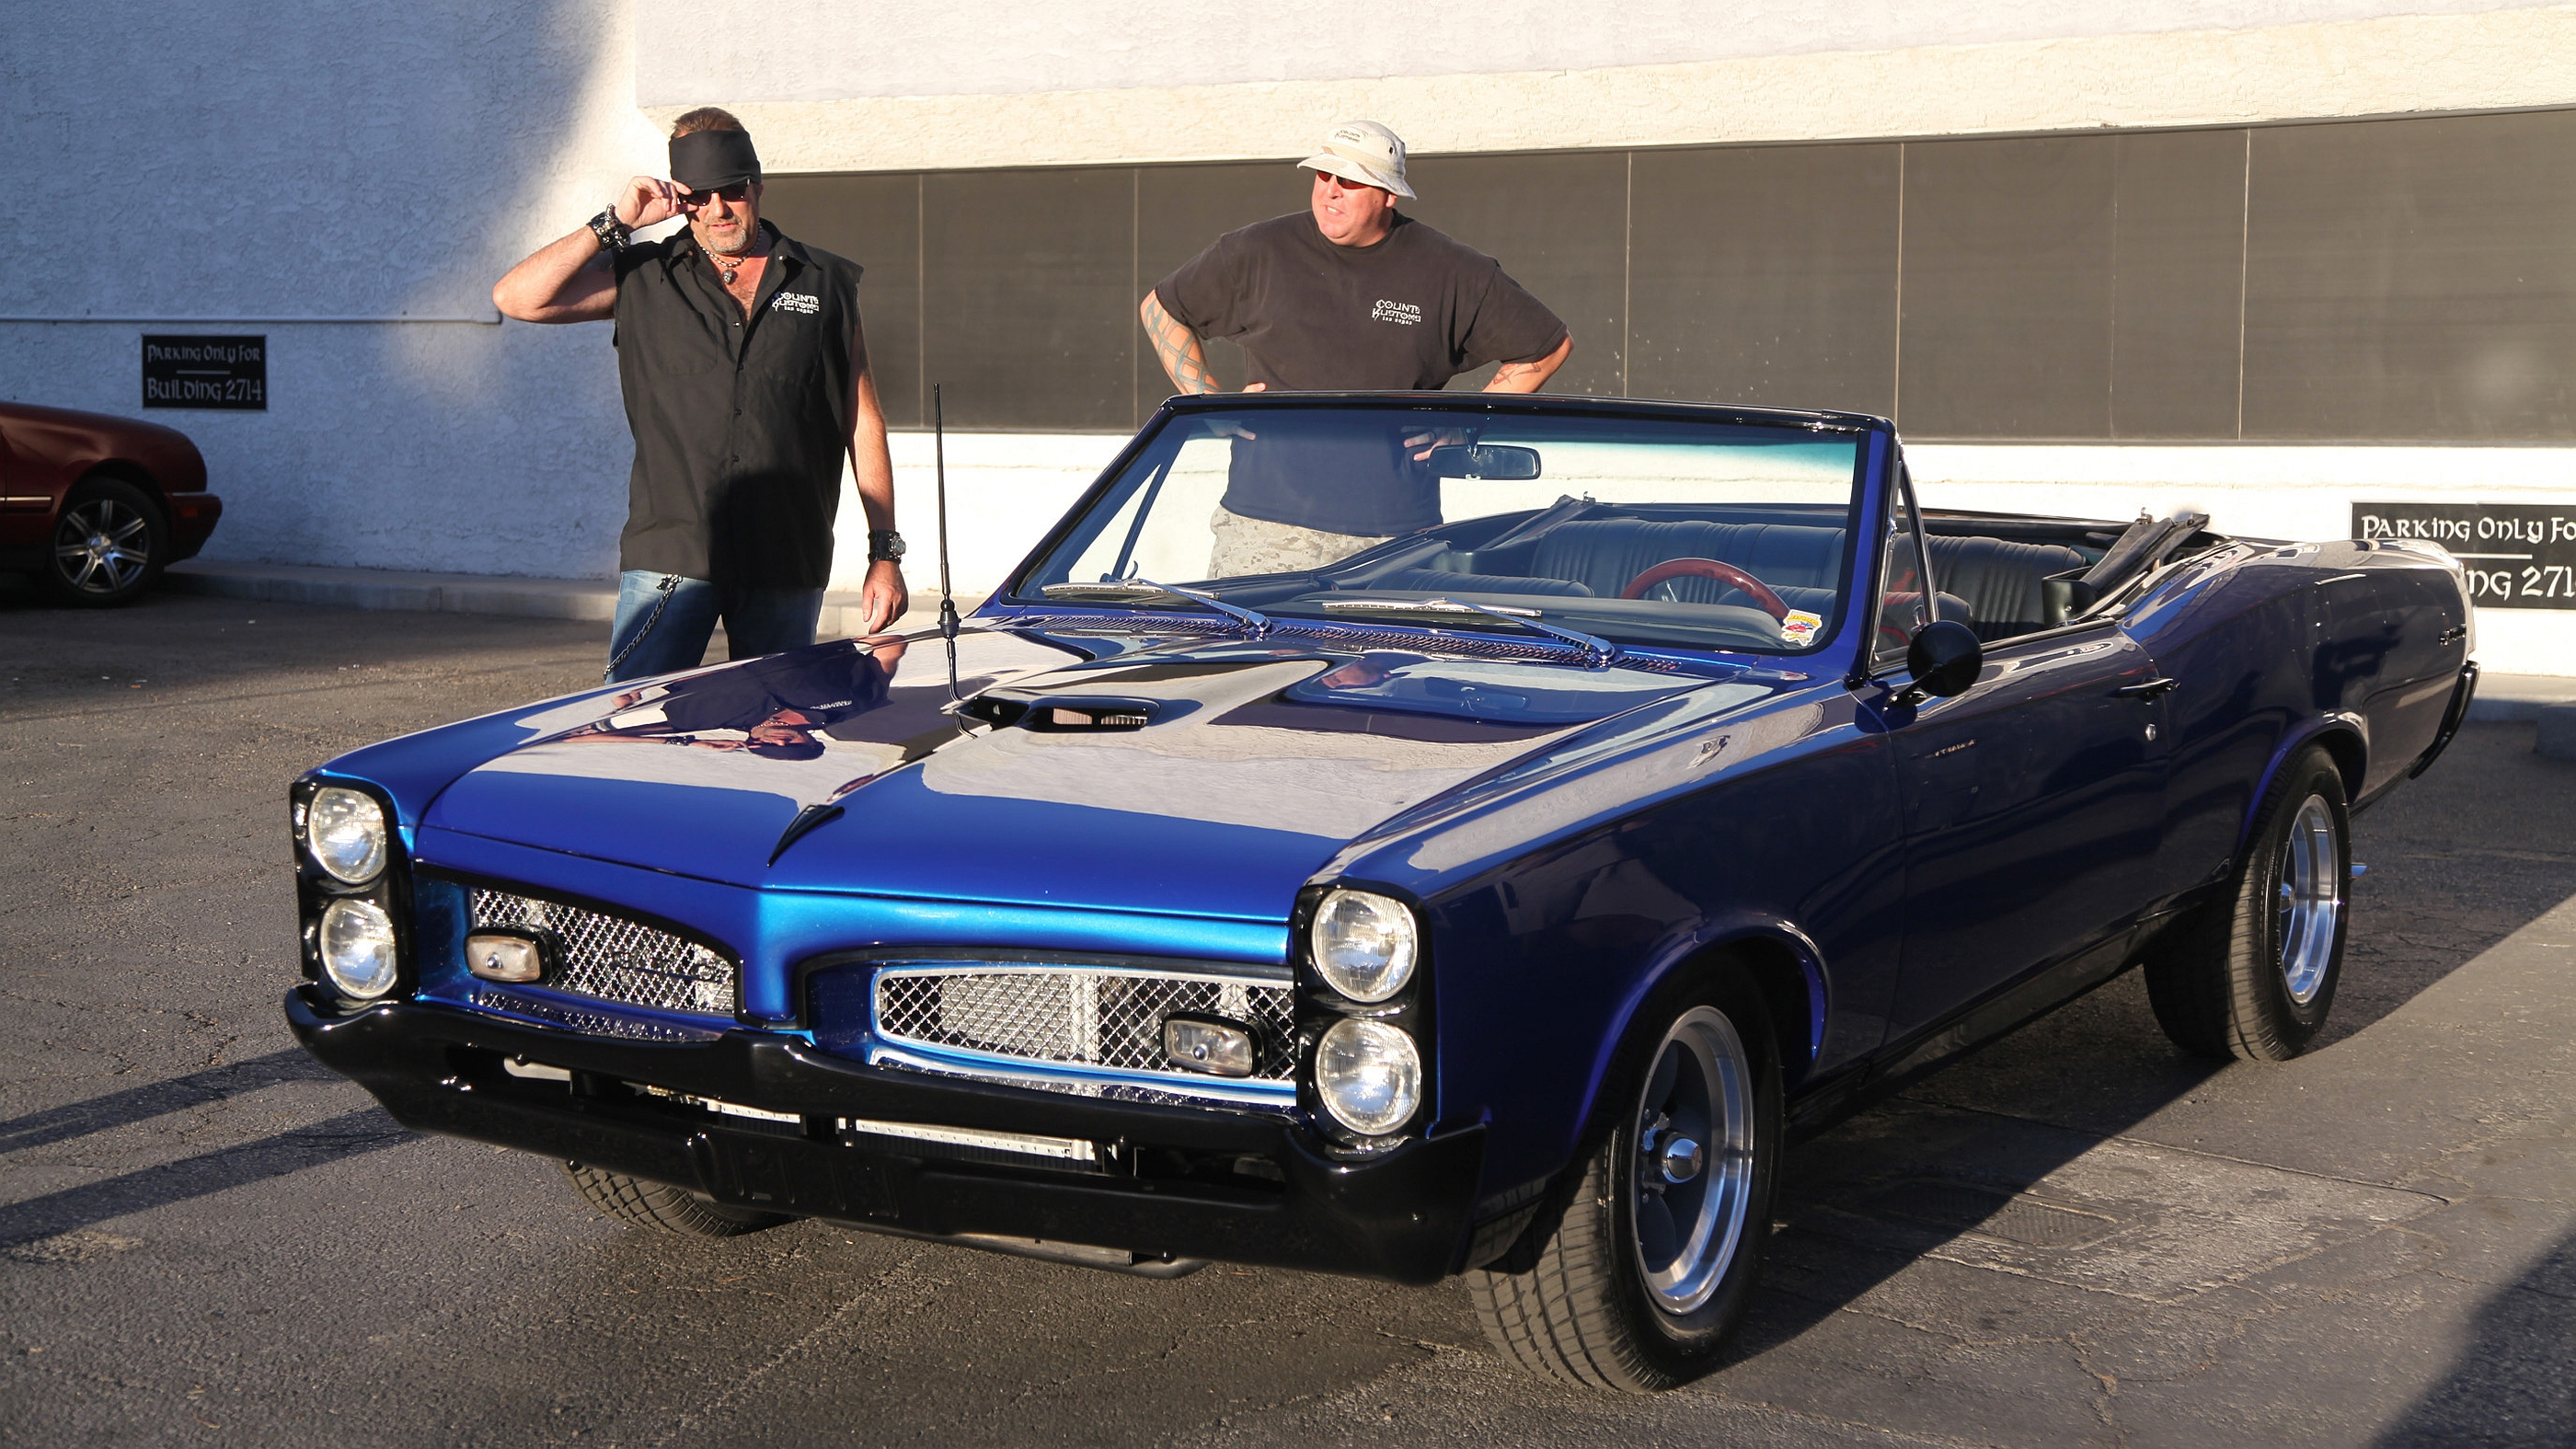 How Old Is Danny From Counting Cars